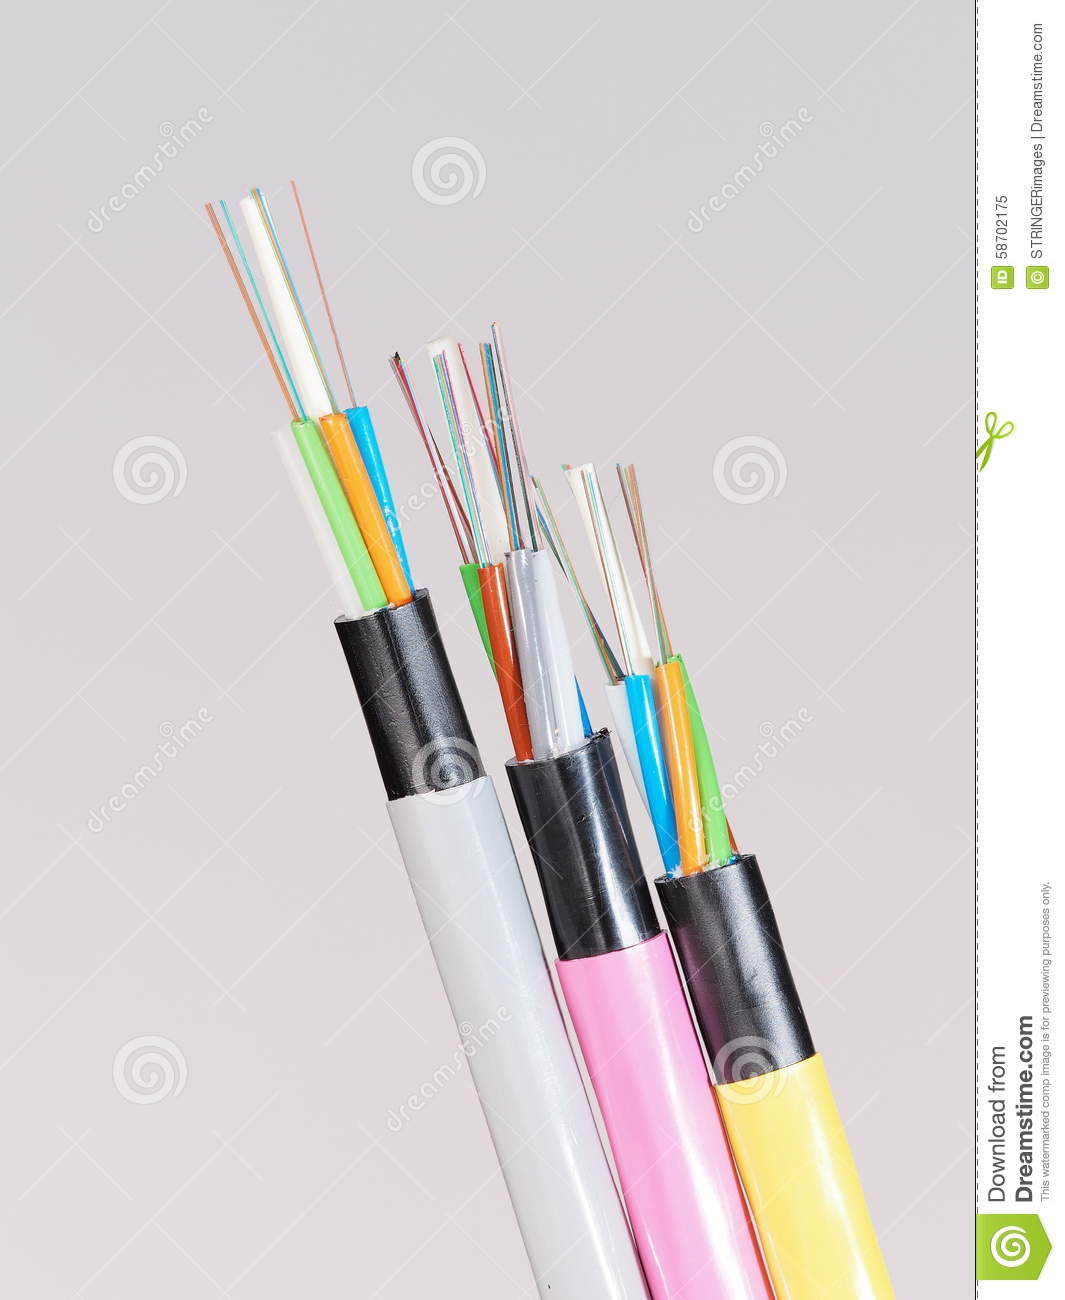 Different Colored Fiber Optic Cable Ends With Stripped Jacket Layers Wiring And Exposed Fibers